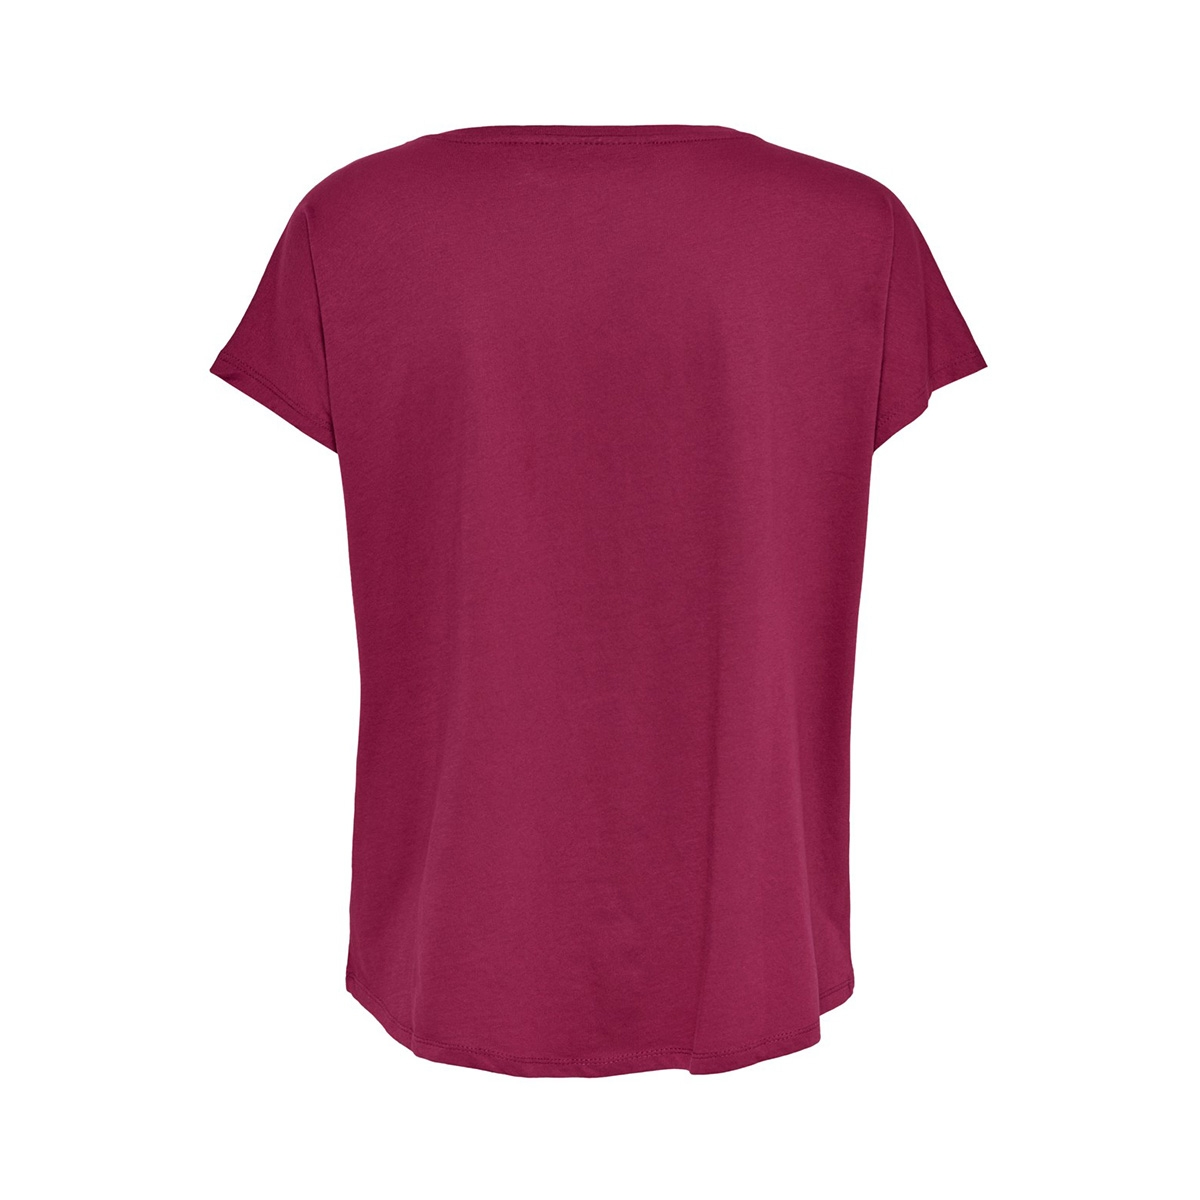 onpgemini loose ss tee 15175594 only play sport shirt beet red/w. beet red